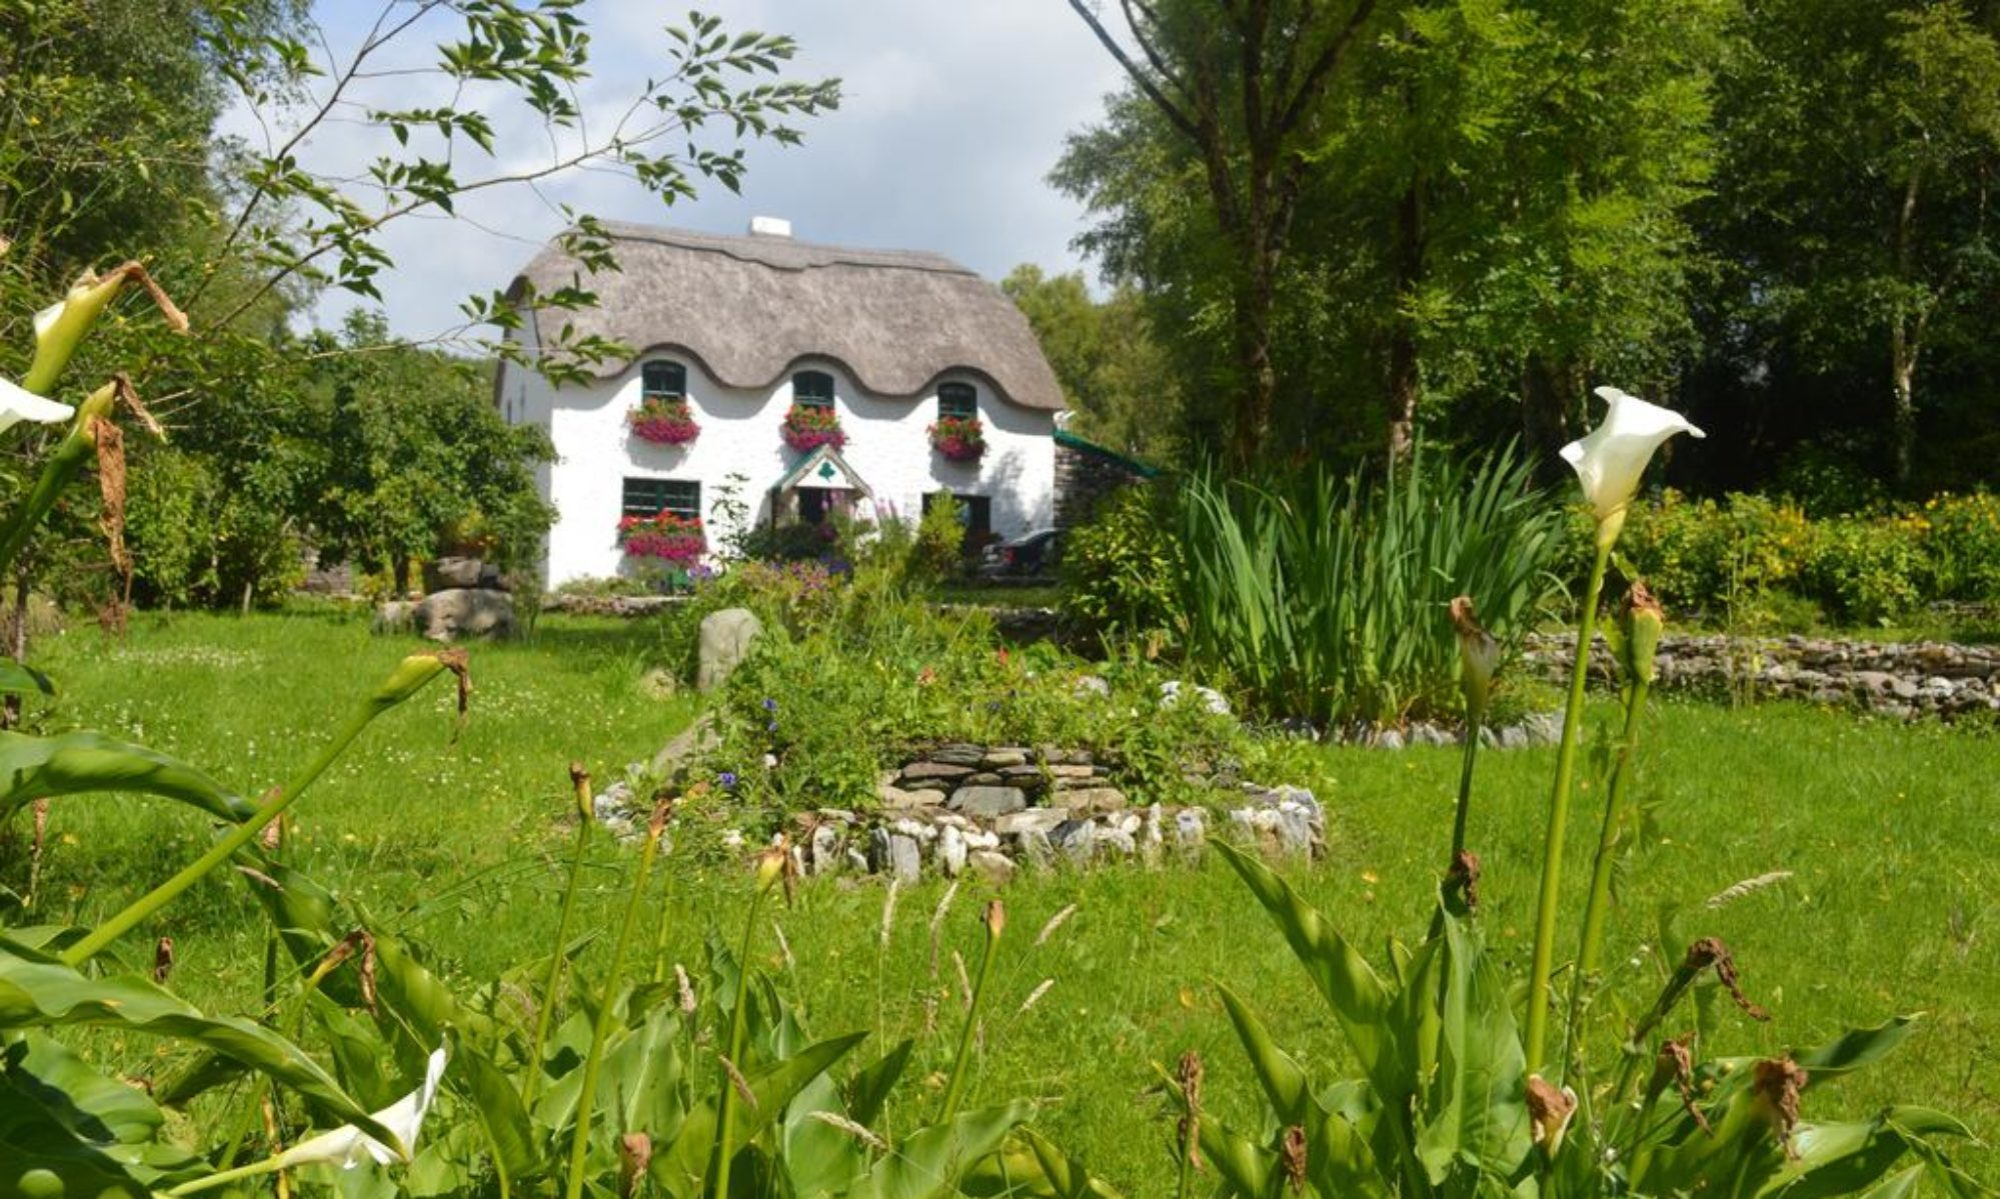 Lissyclearig Thatched Cottage B&B